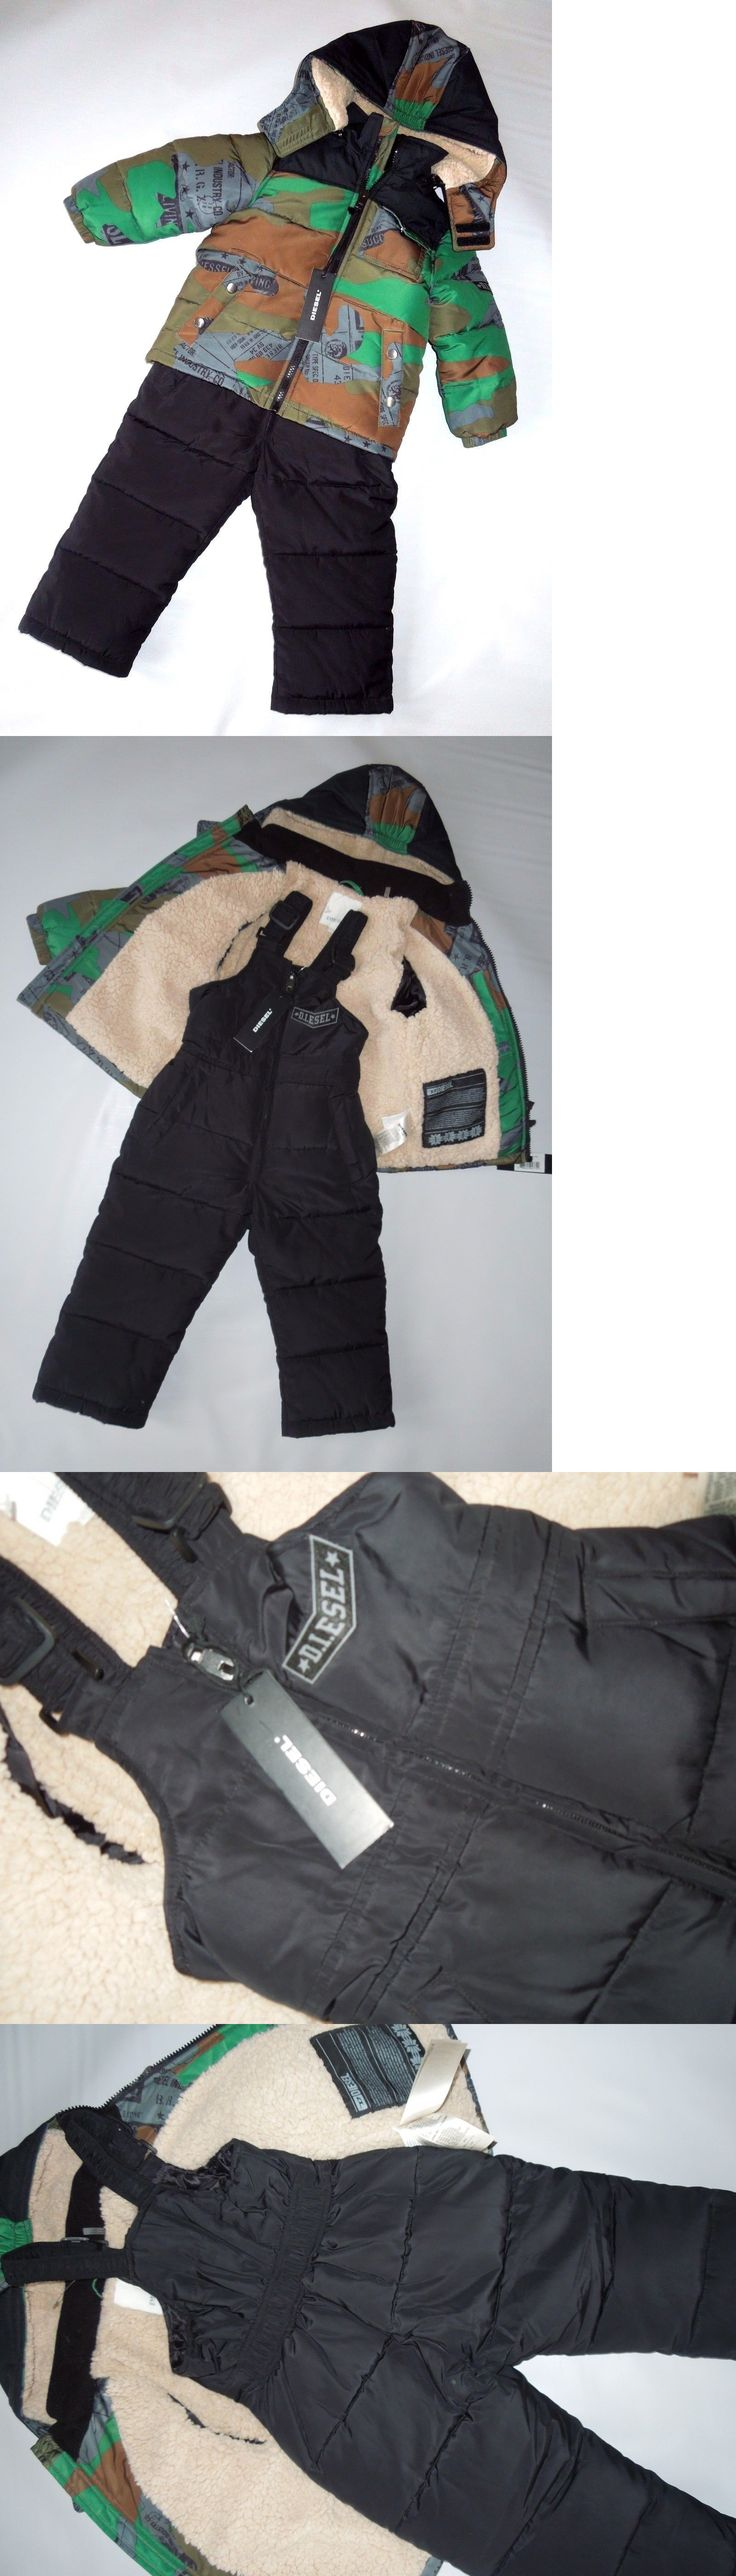 Baby Boys Clothing And Accessories: Diesel Baby Boys Green And Black Snowsuit Bib Pants Jacket Set Size 2T 2 BUY IT NOW ONLY: $84.96